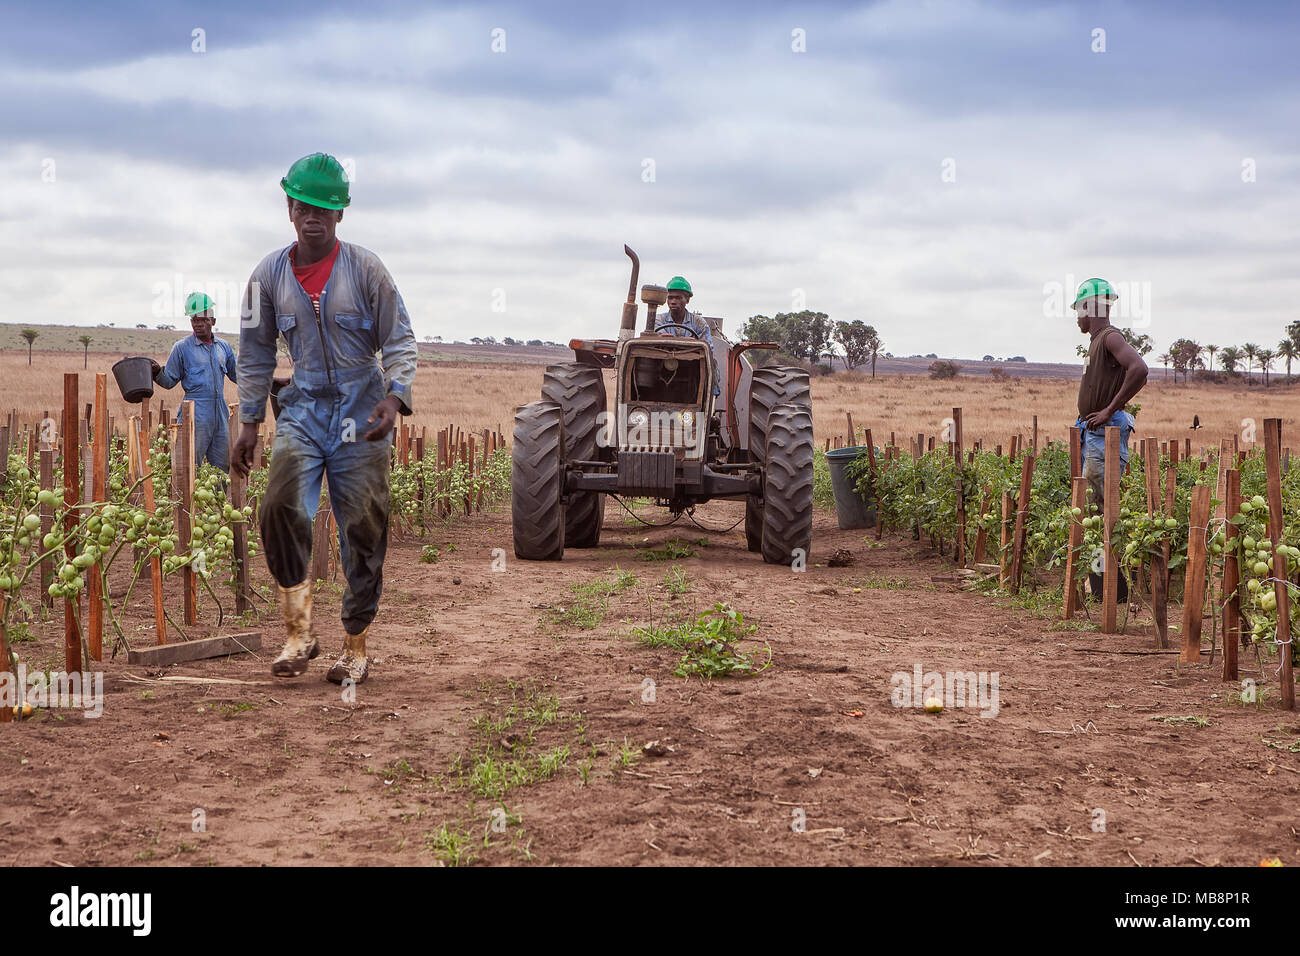 CABINDA/ANGOLA - 09JUN2010 - Team of African farmers walking between planting with tractor. - Stock Image